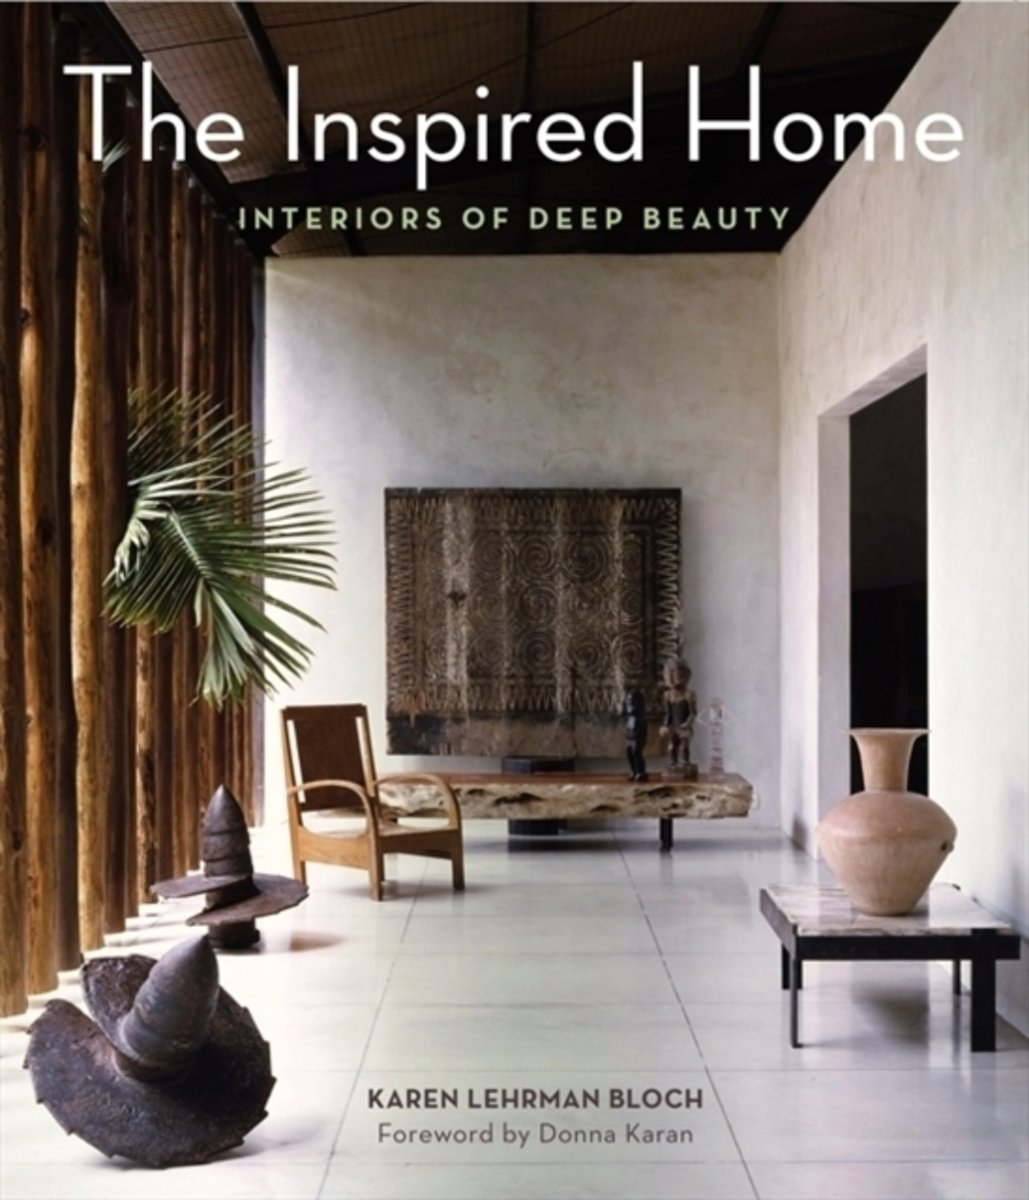 Adams Interieur Styling Bol The Inspired Home Karen Lehrman Bloch 9780062126856